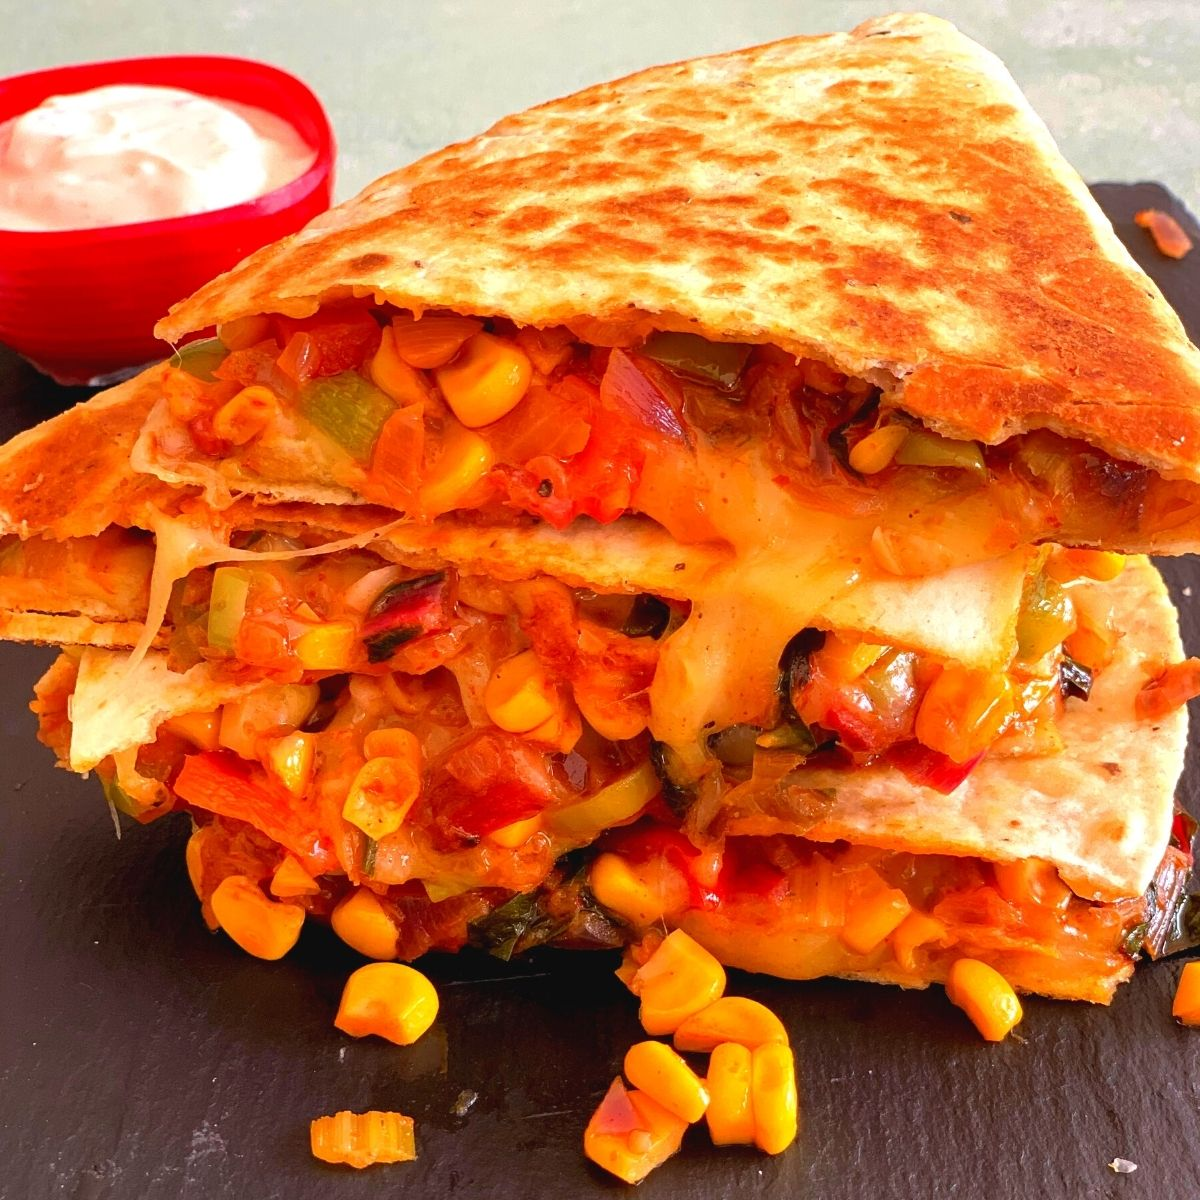 Farmer's Market Vegetarian quesadilla is an easy peasy, quick 10-minute lunch idea recipe using fresh swiss chard, peppers, and corn.